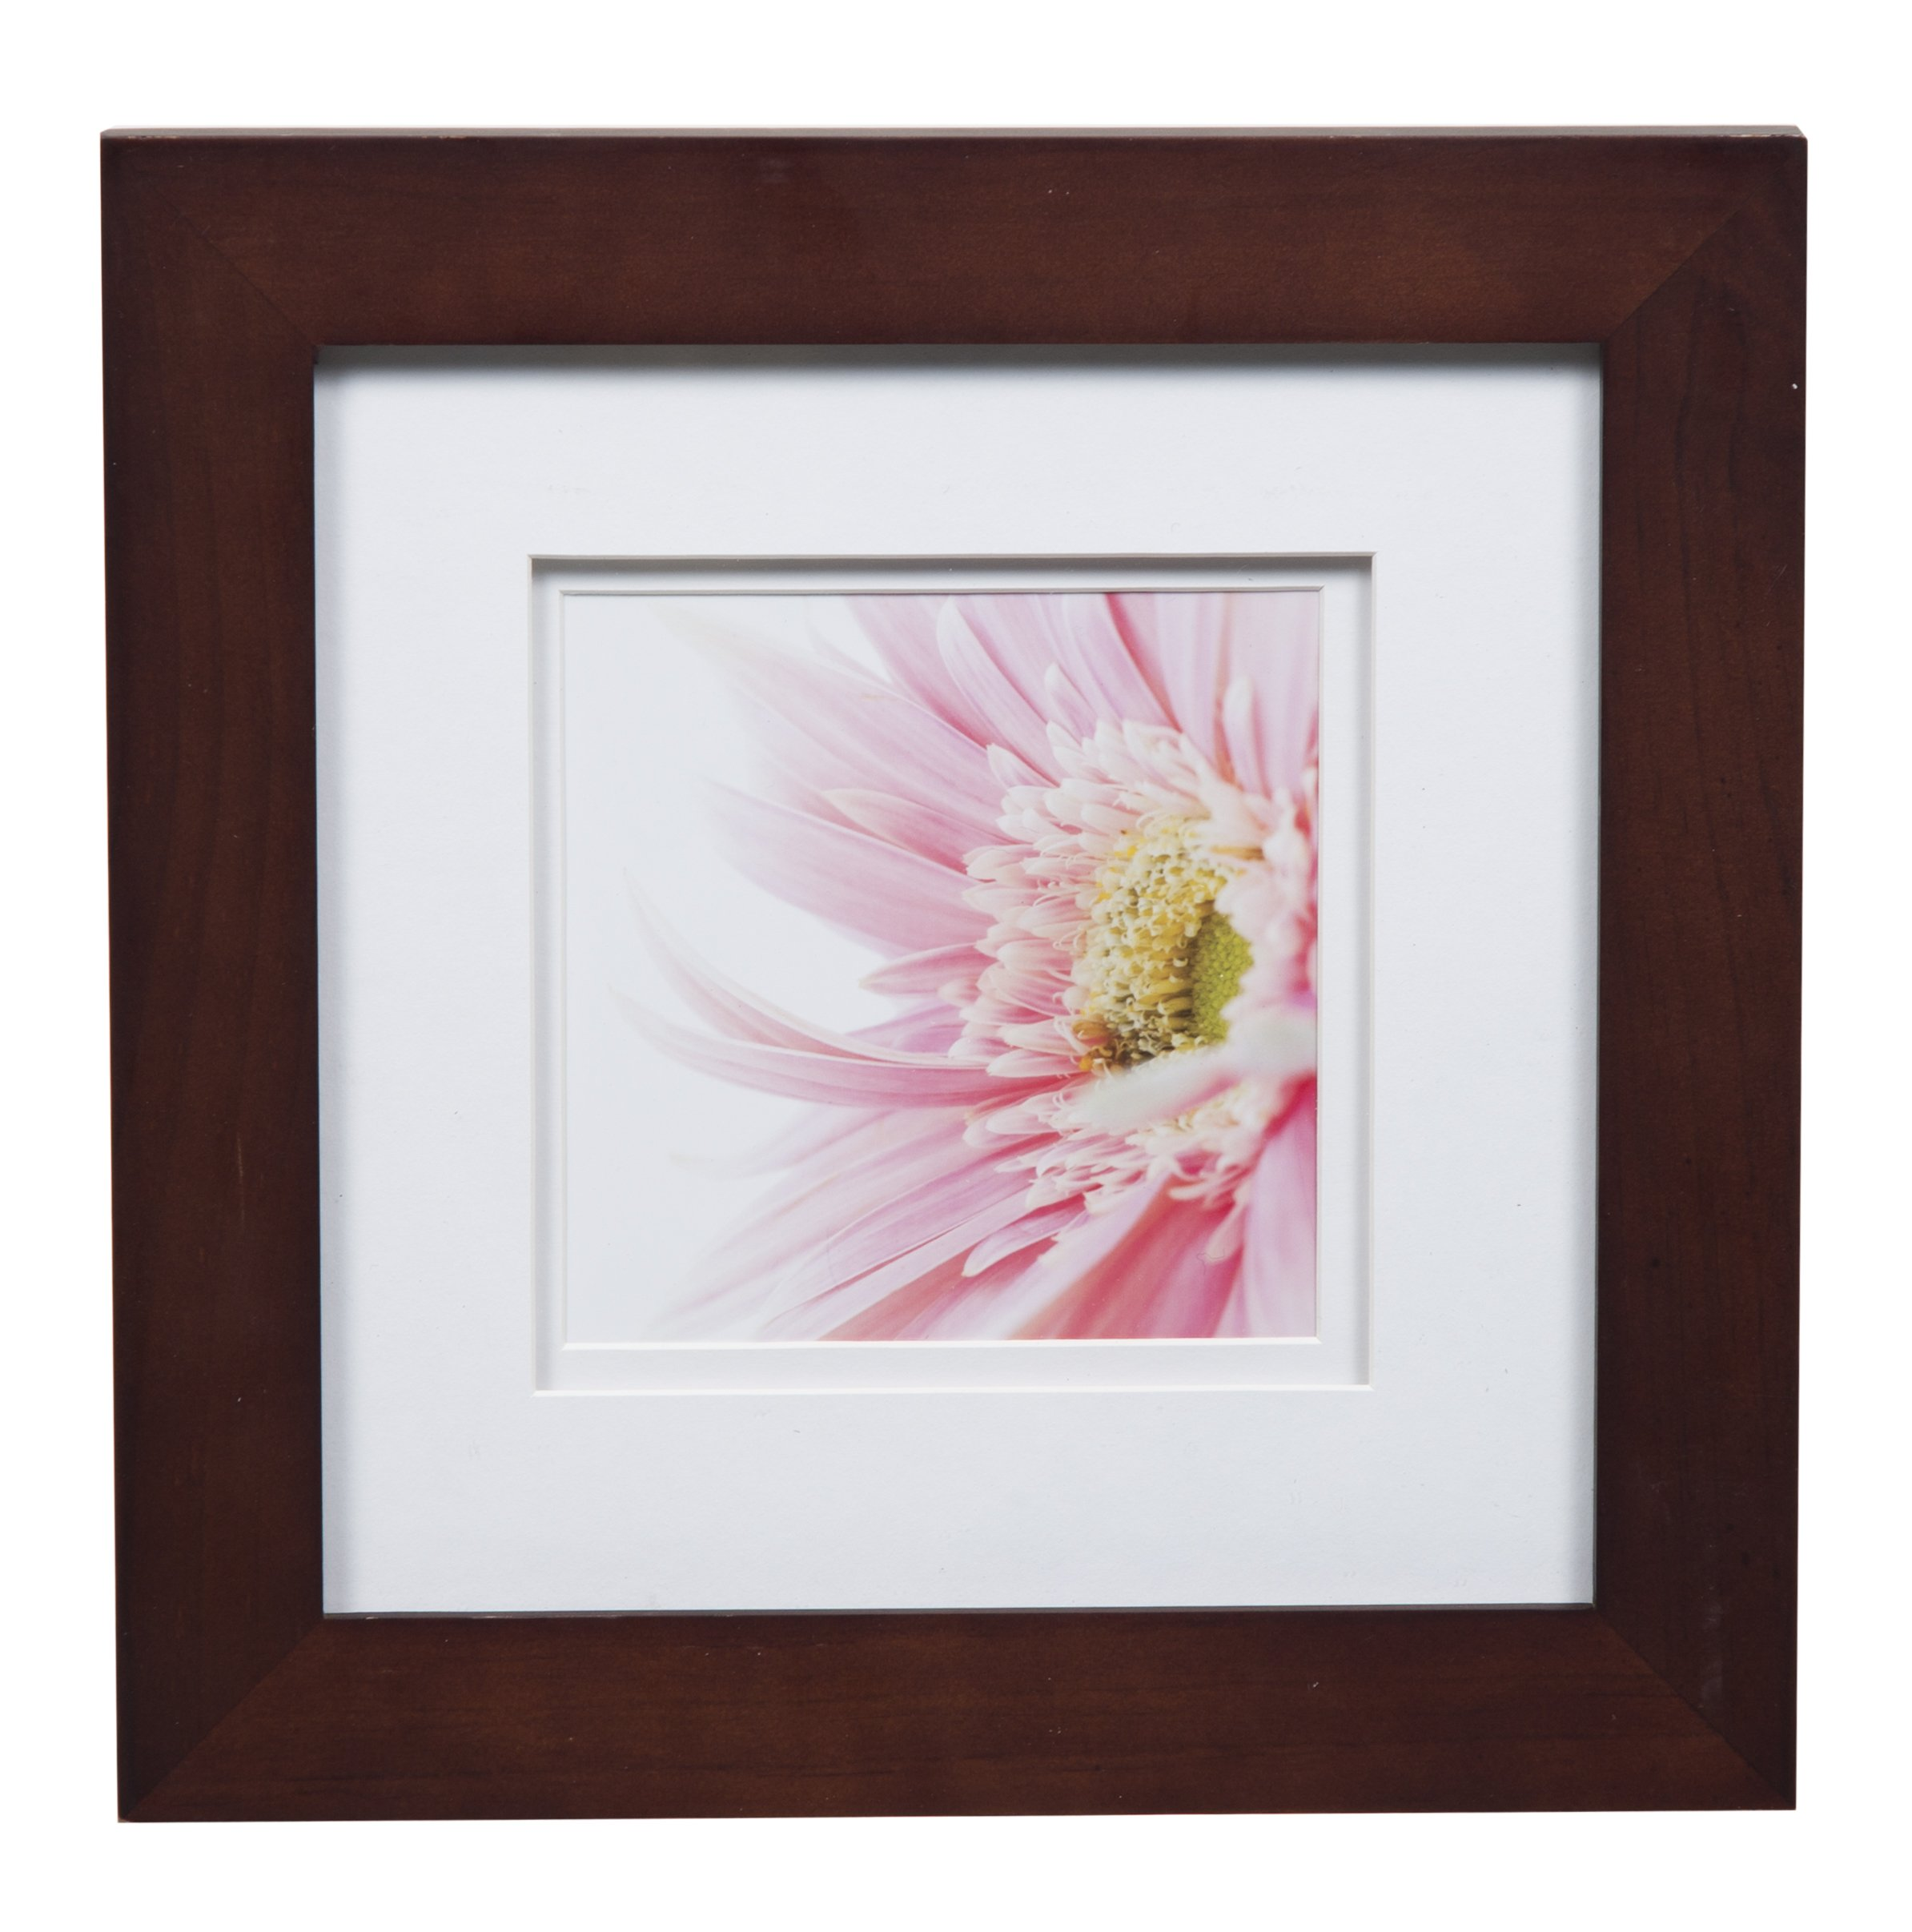 Gallery Solutions Photo 8x8 Flat Walnut Tabletop or Wall Frame with Double White Mat for 5x5 Picture, 8'' x 8'', by Gallery Solutions